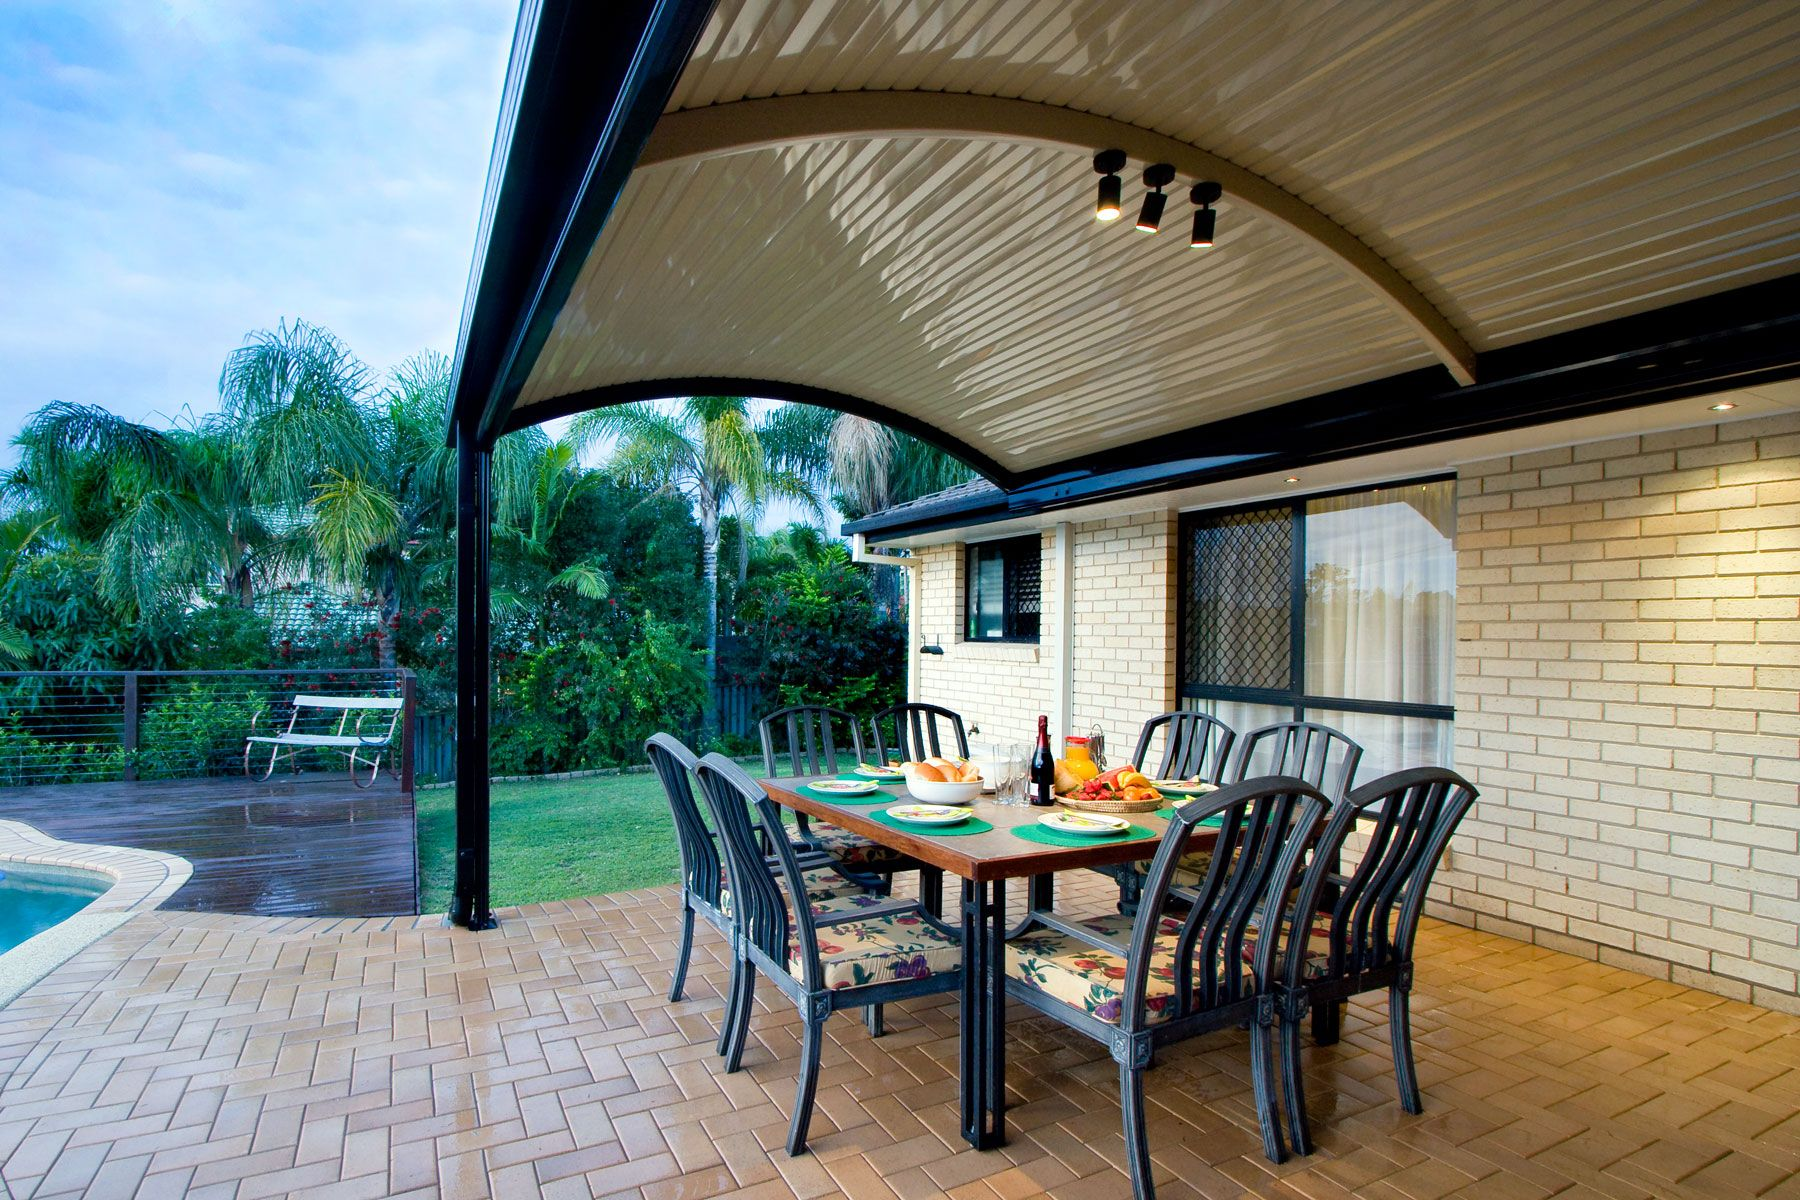 The Stratco Outback Curved Roof Patio Is A Unique Sleek Curved Roof Patio Design With A